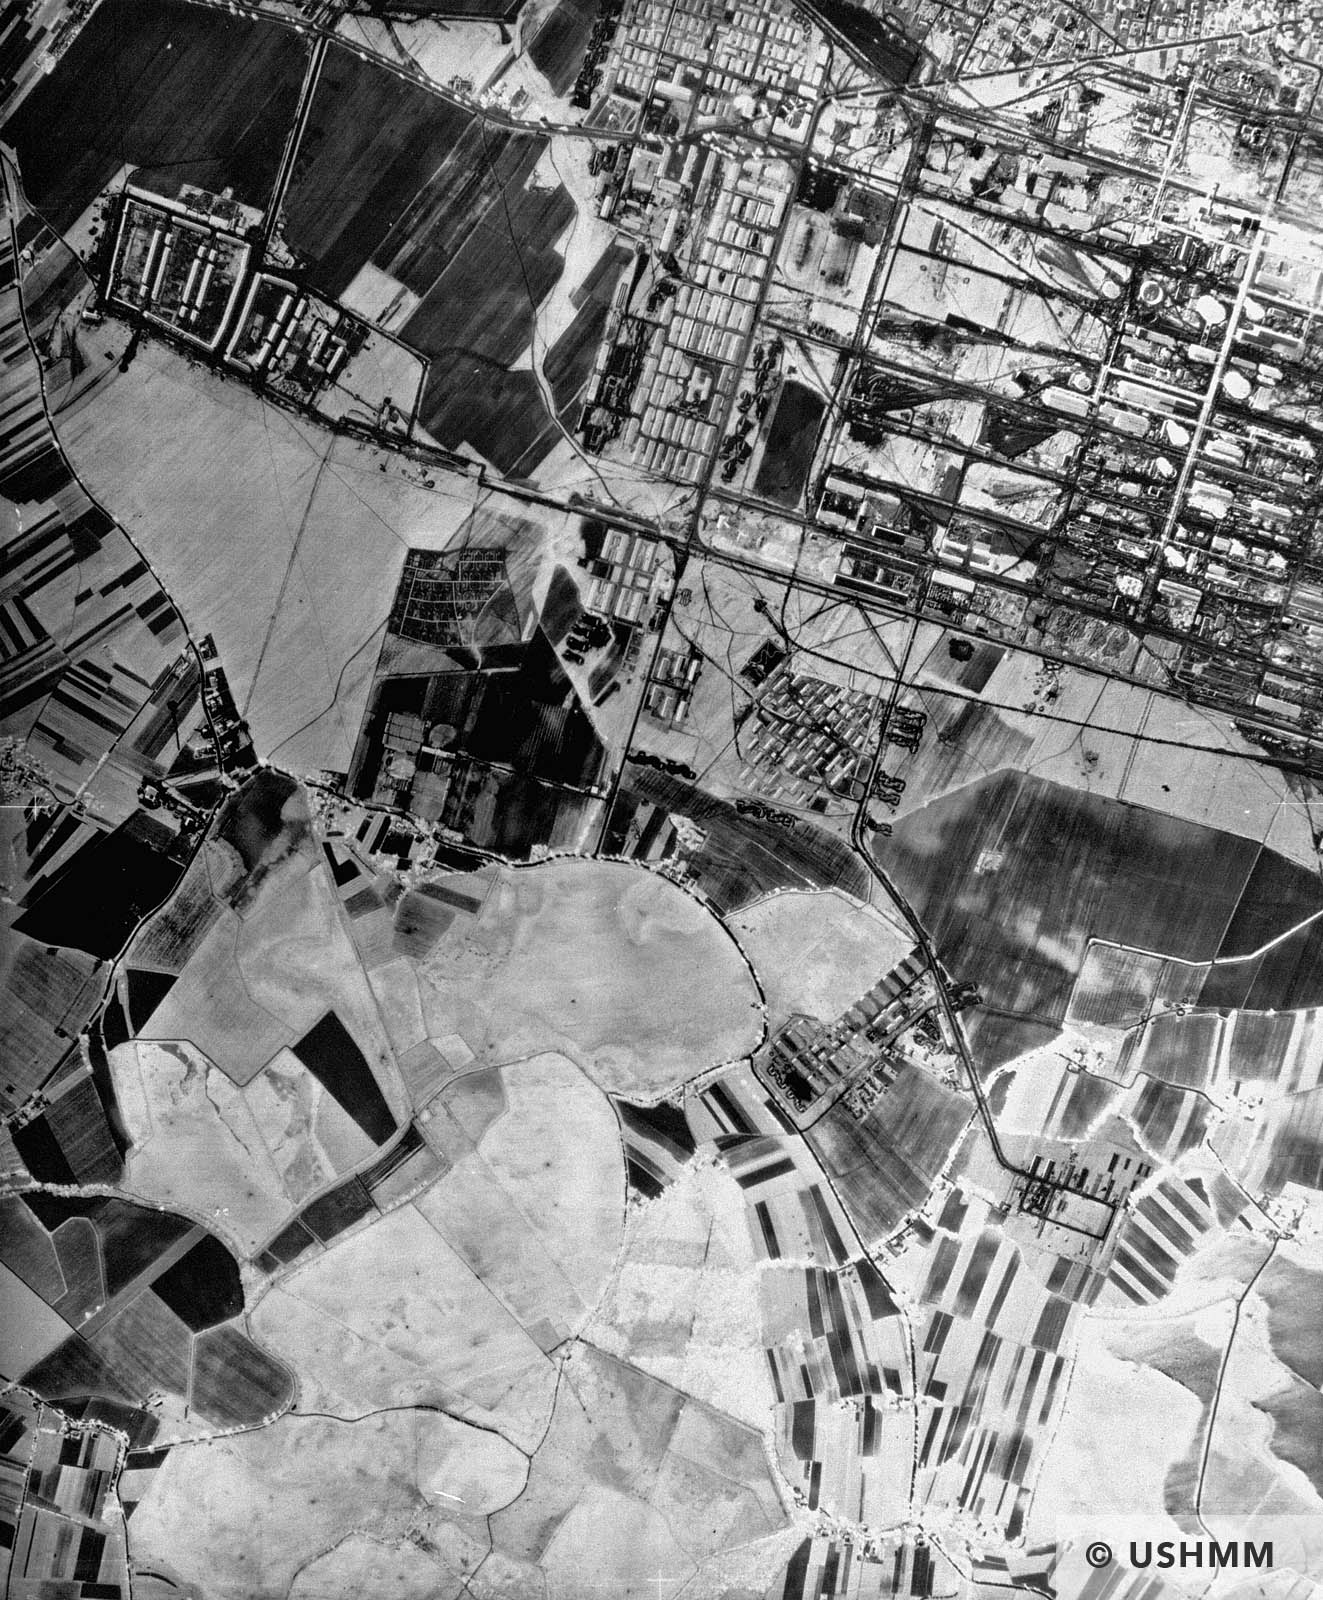 An aerial reconnaissance photograph showing the I.G. Farben Buna plant at Auschwitz. April to August 1944 USHMM 04308